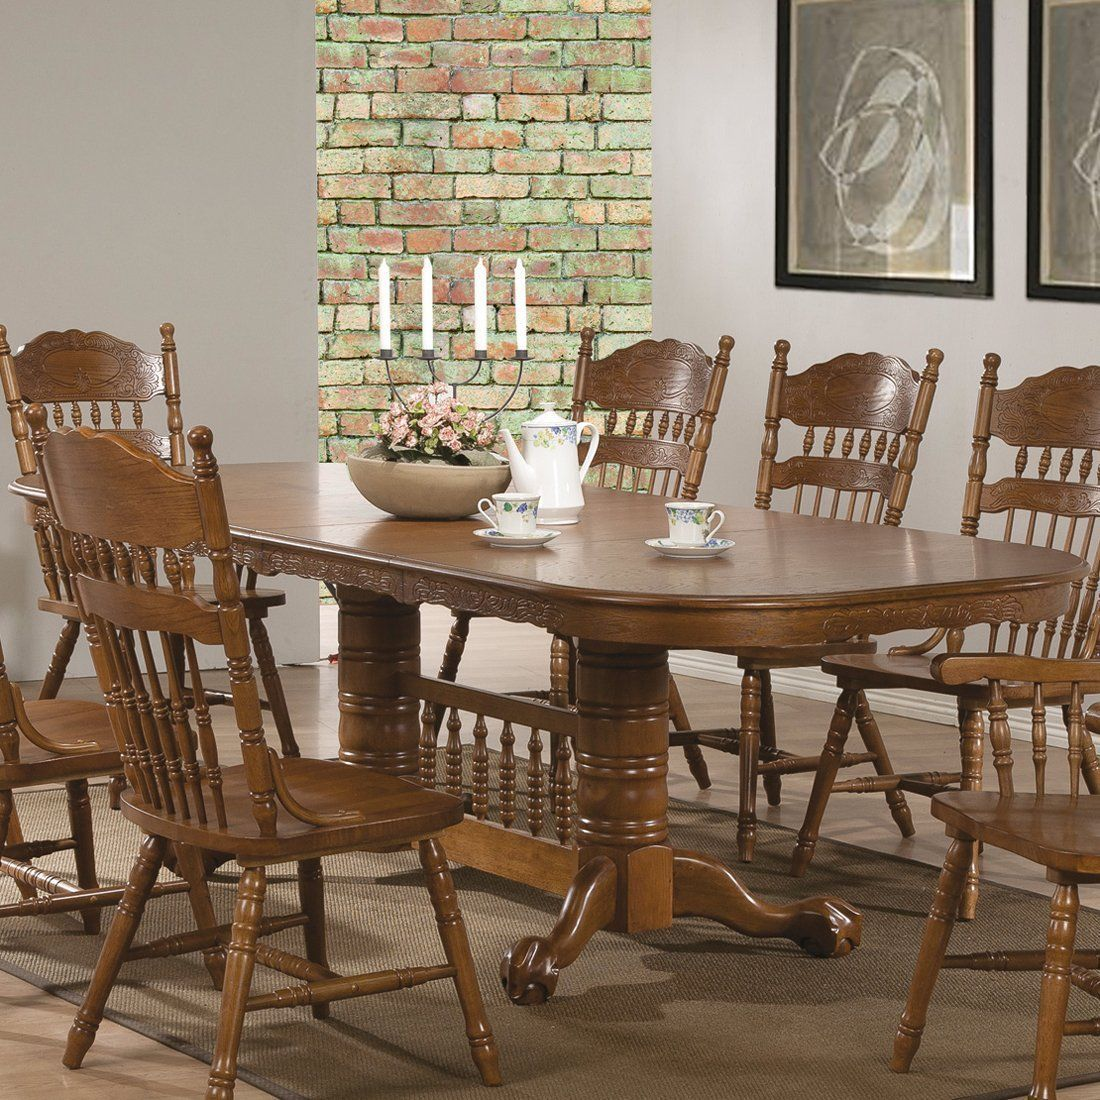 COUNTRY STYLE 9 PC OAK WOOD TRADITIONAL DINING TABLE & CHAIRS